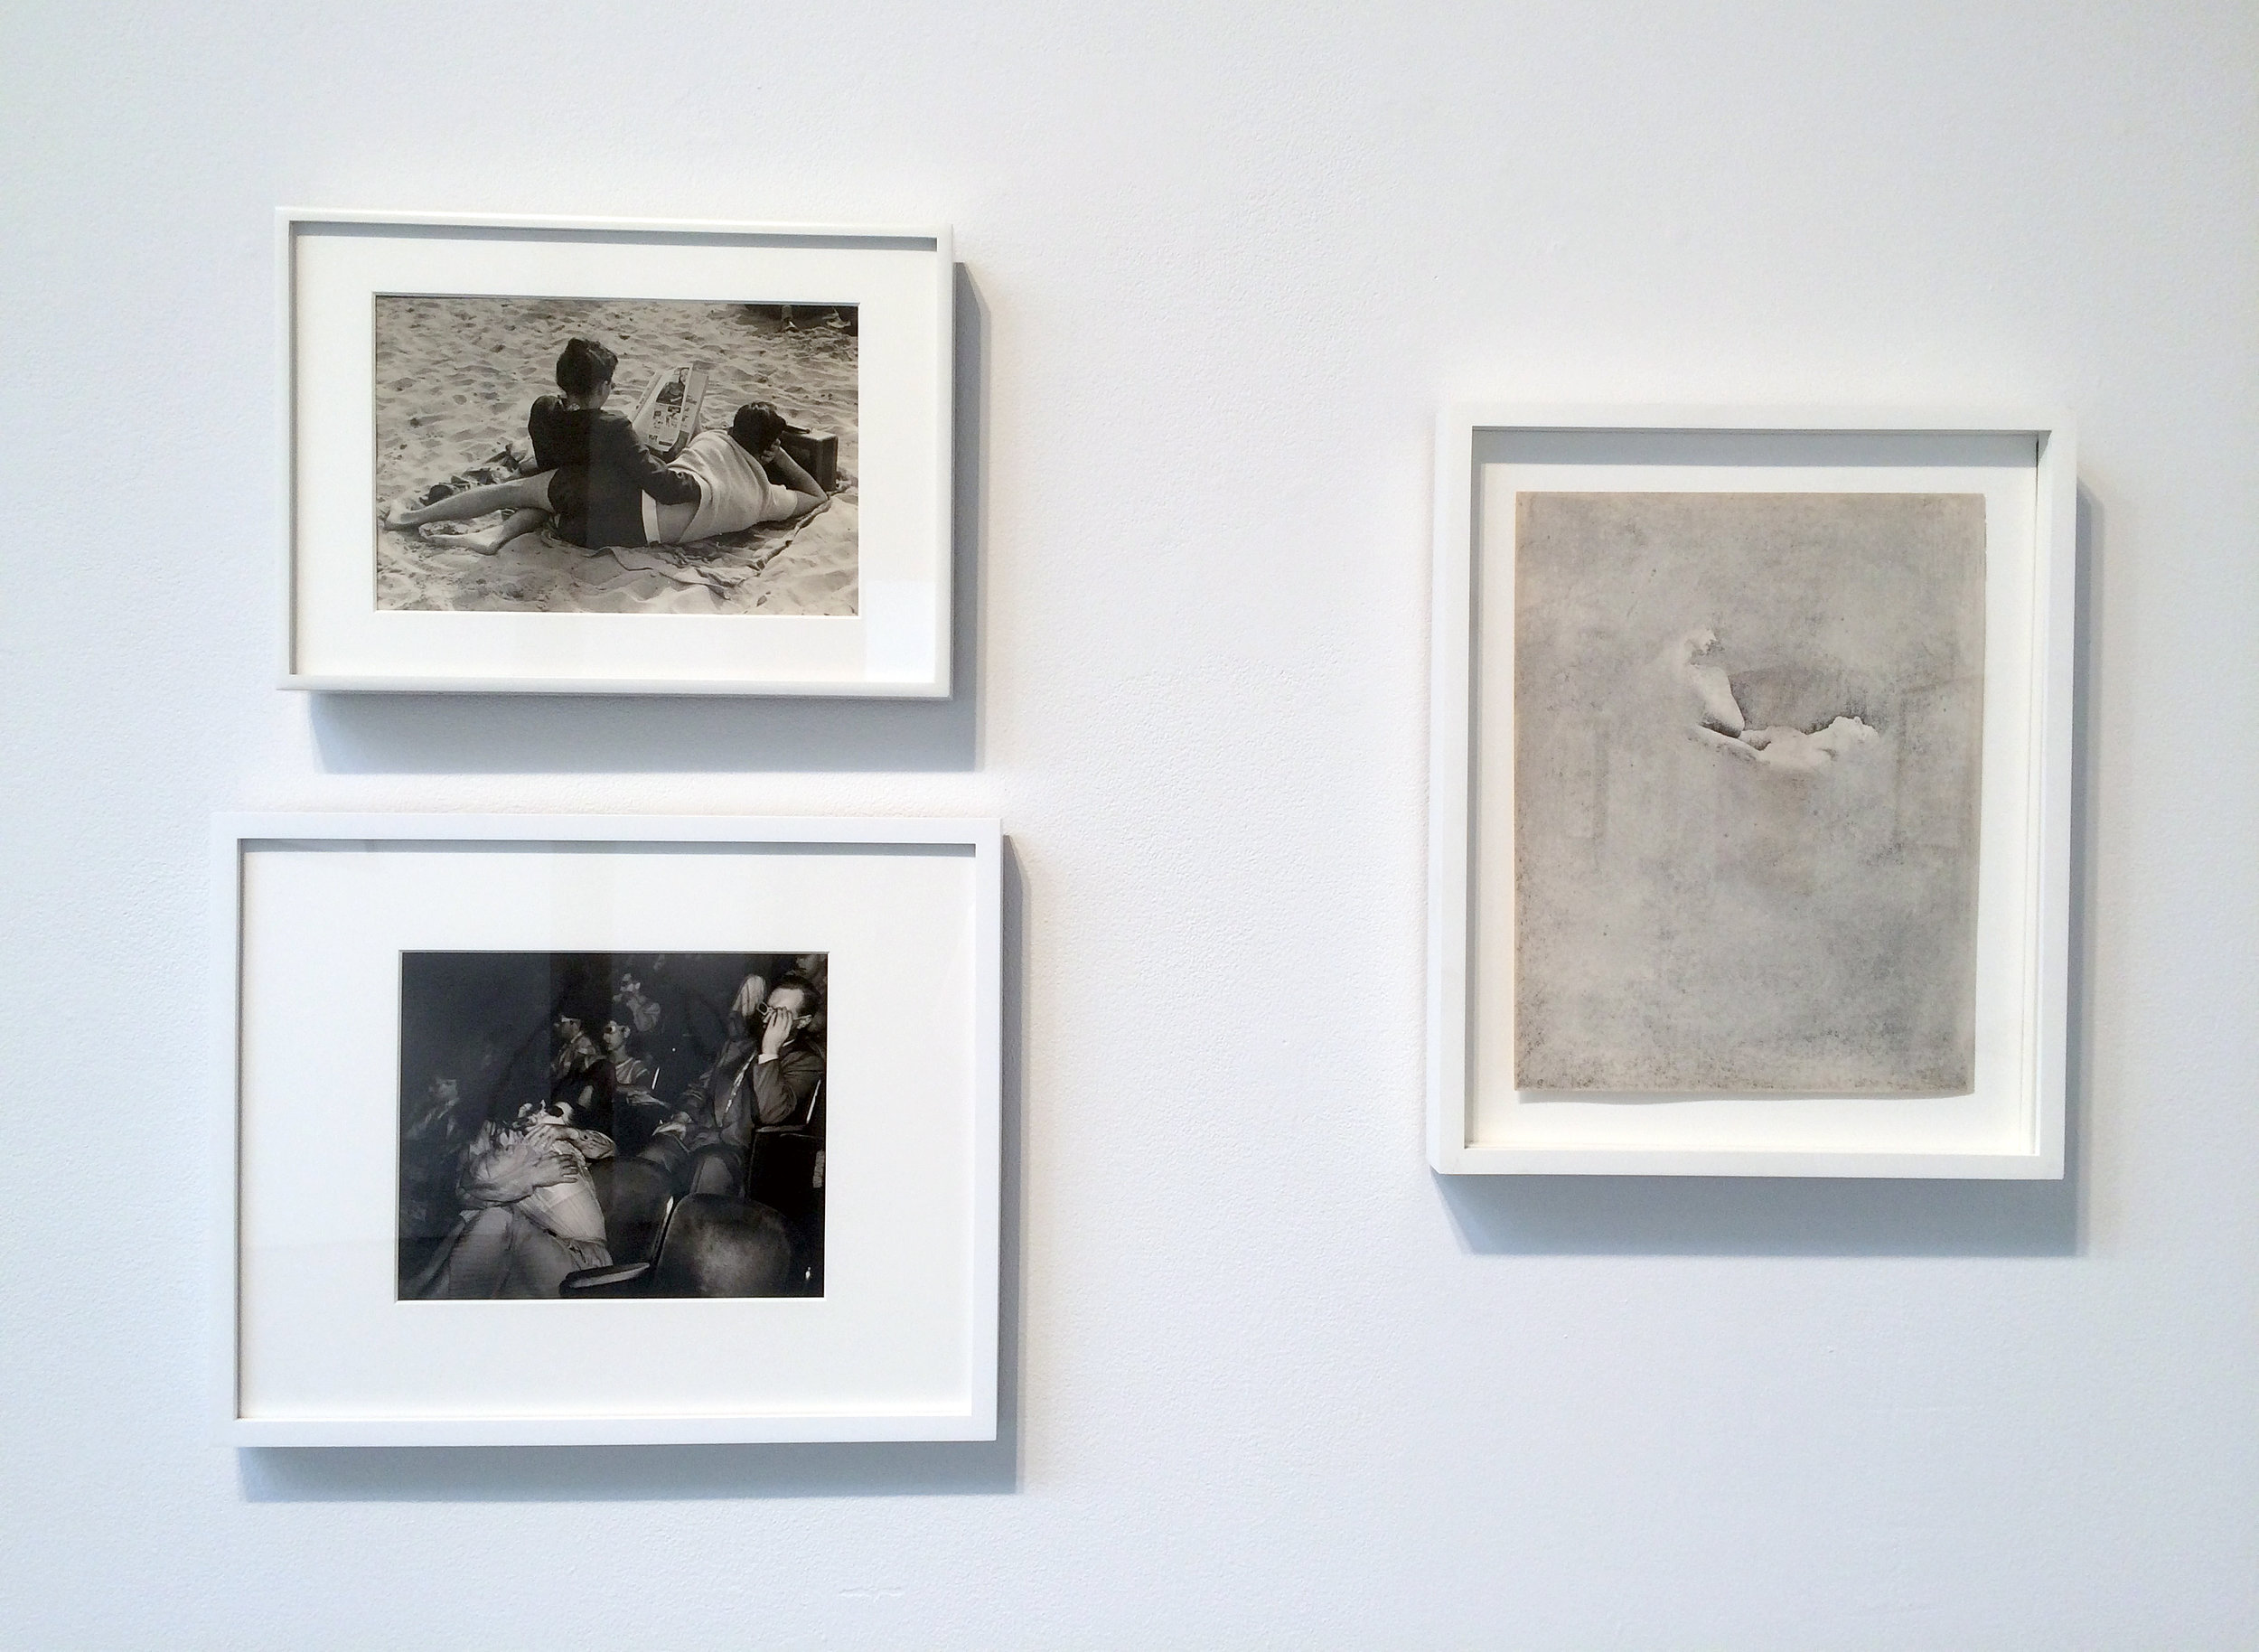 Installation view. Courtesy of Julie Saul Gallery, New York